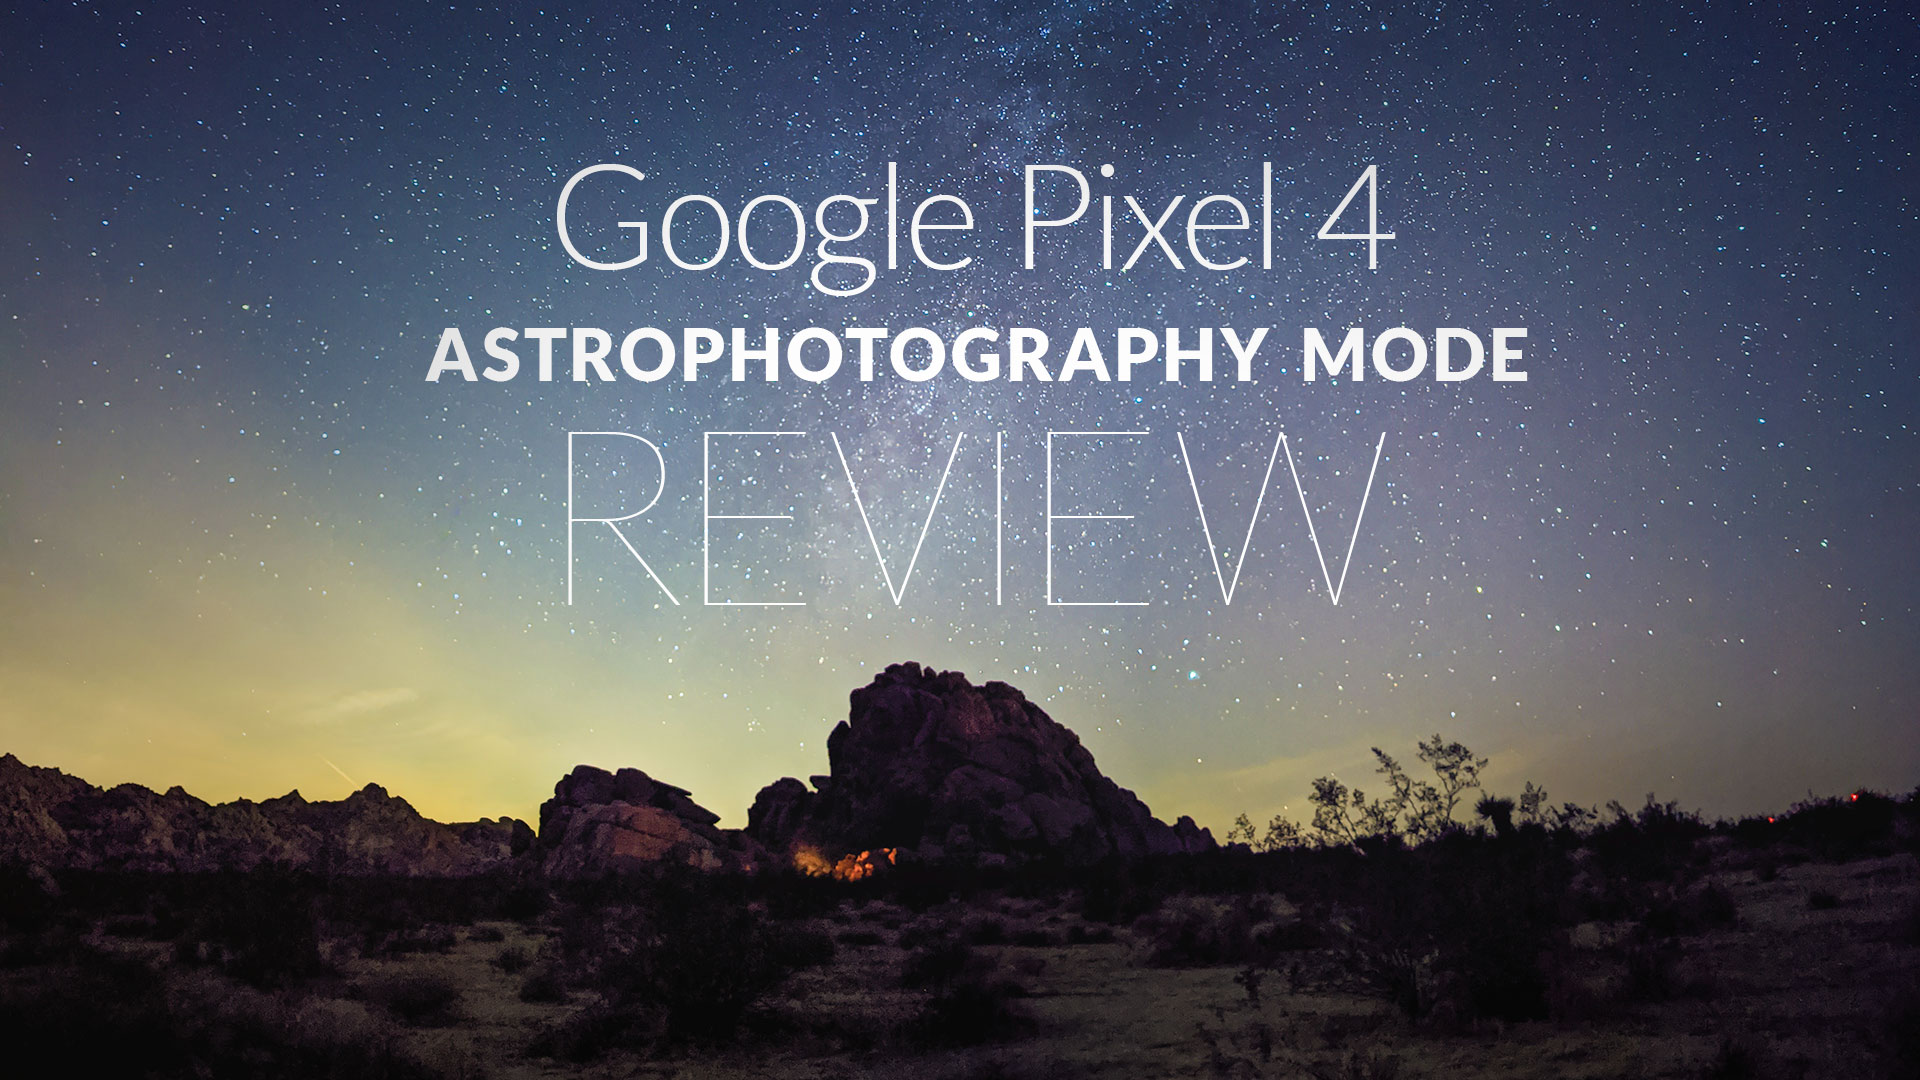 Google Pixel 4: Astrophotography Mode Review